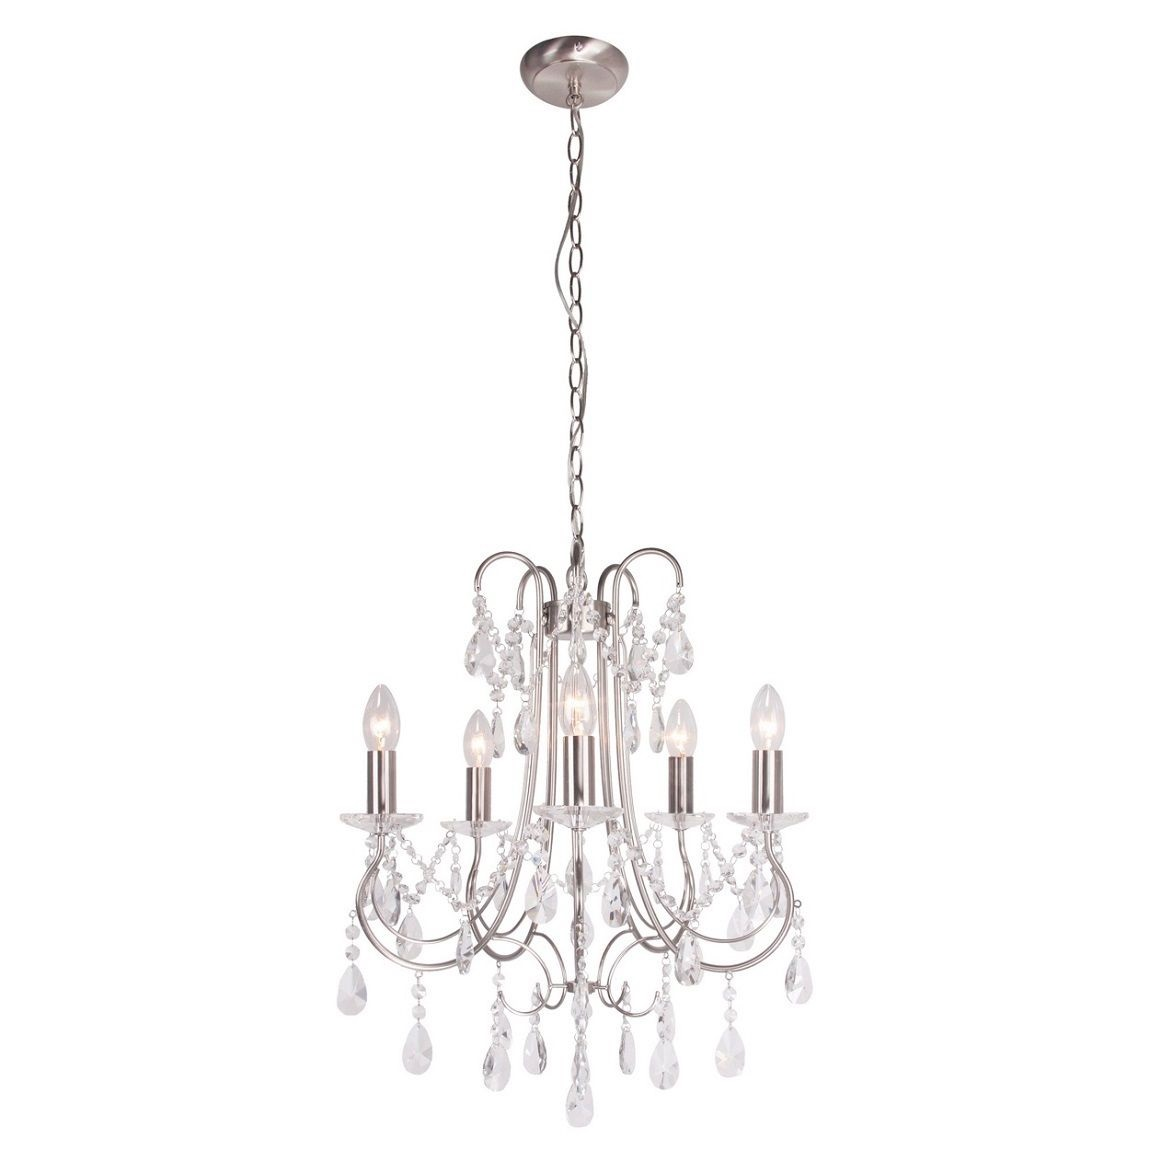 Debenhams Home Collection 'Trinity' Chandelier Ceiling